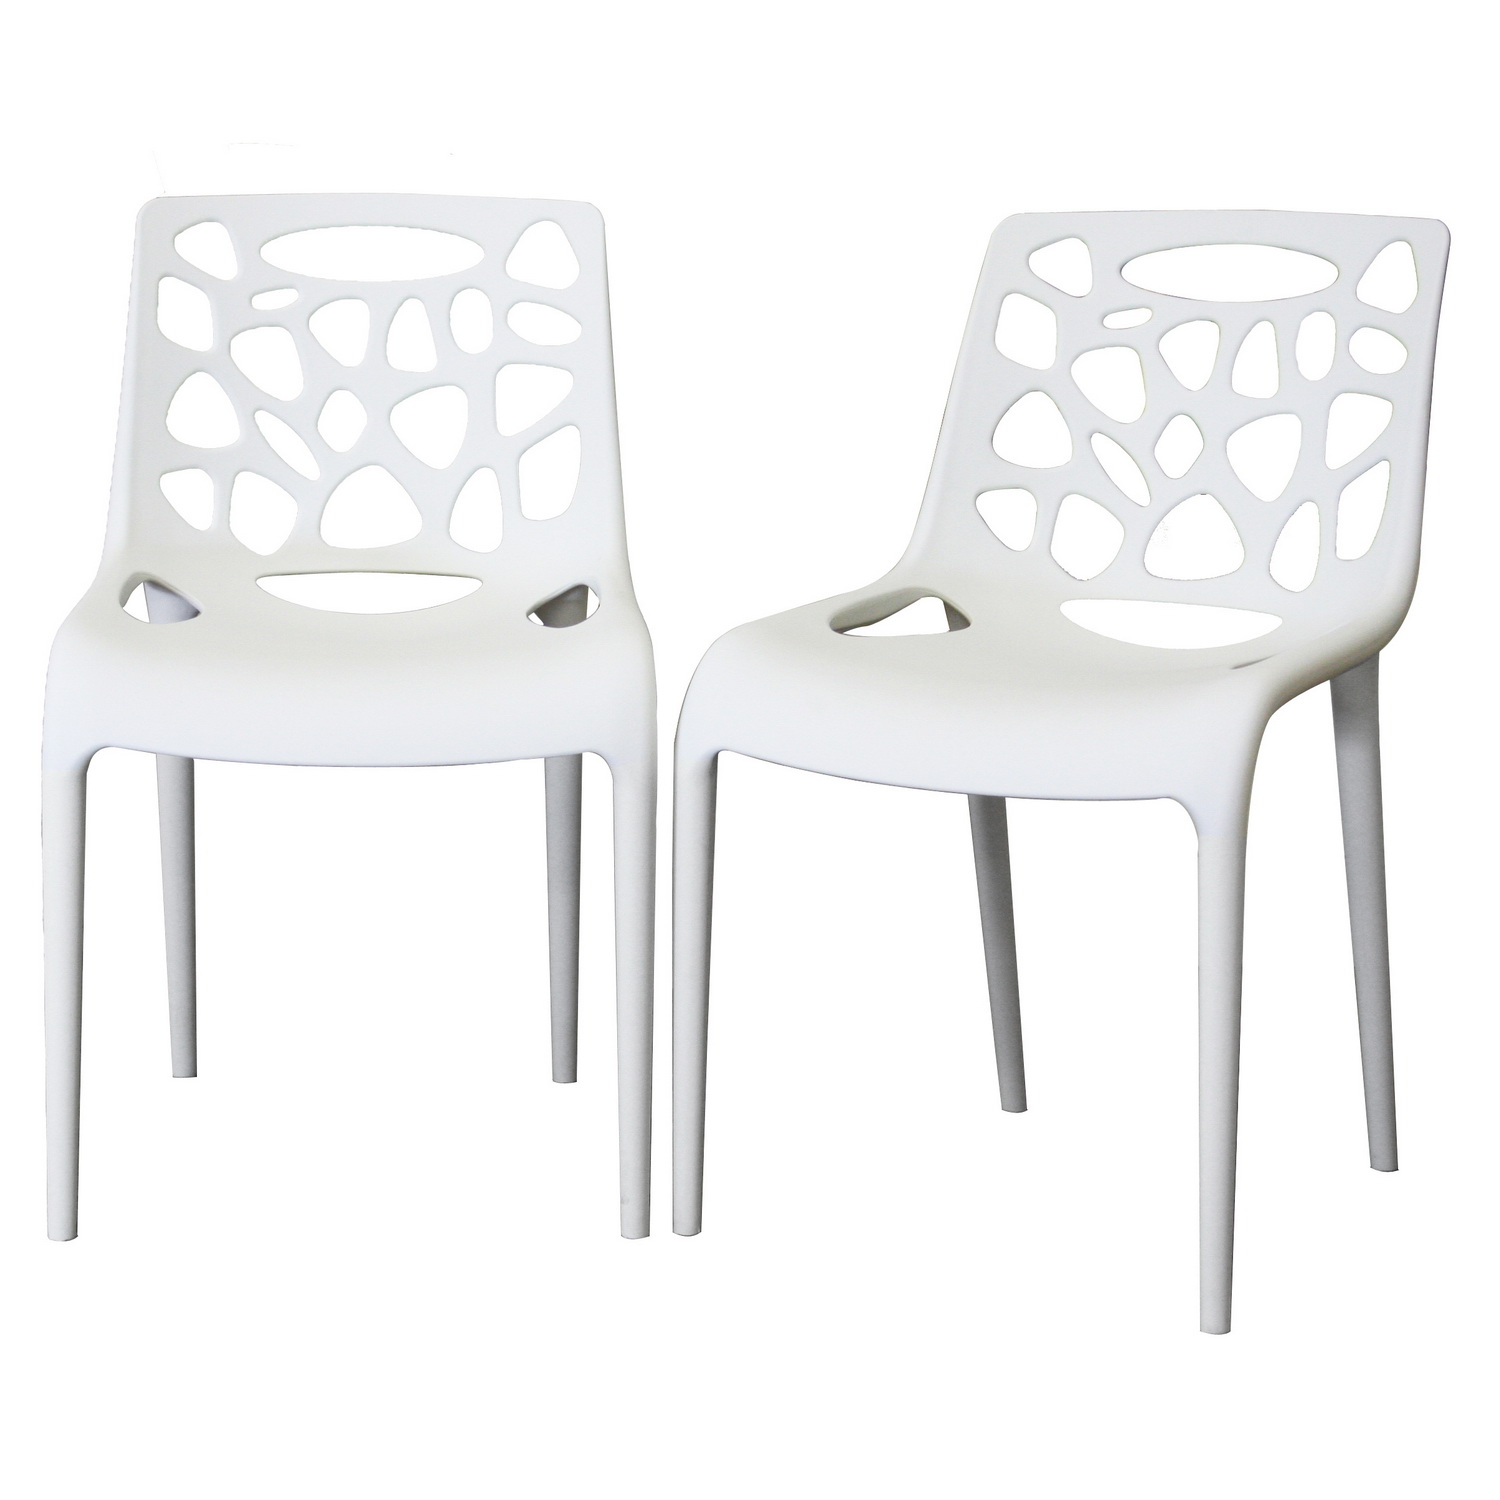 White modern dining chair chair pads cushions for White plastic dining chair